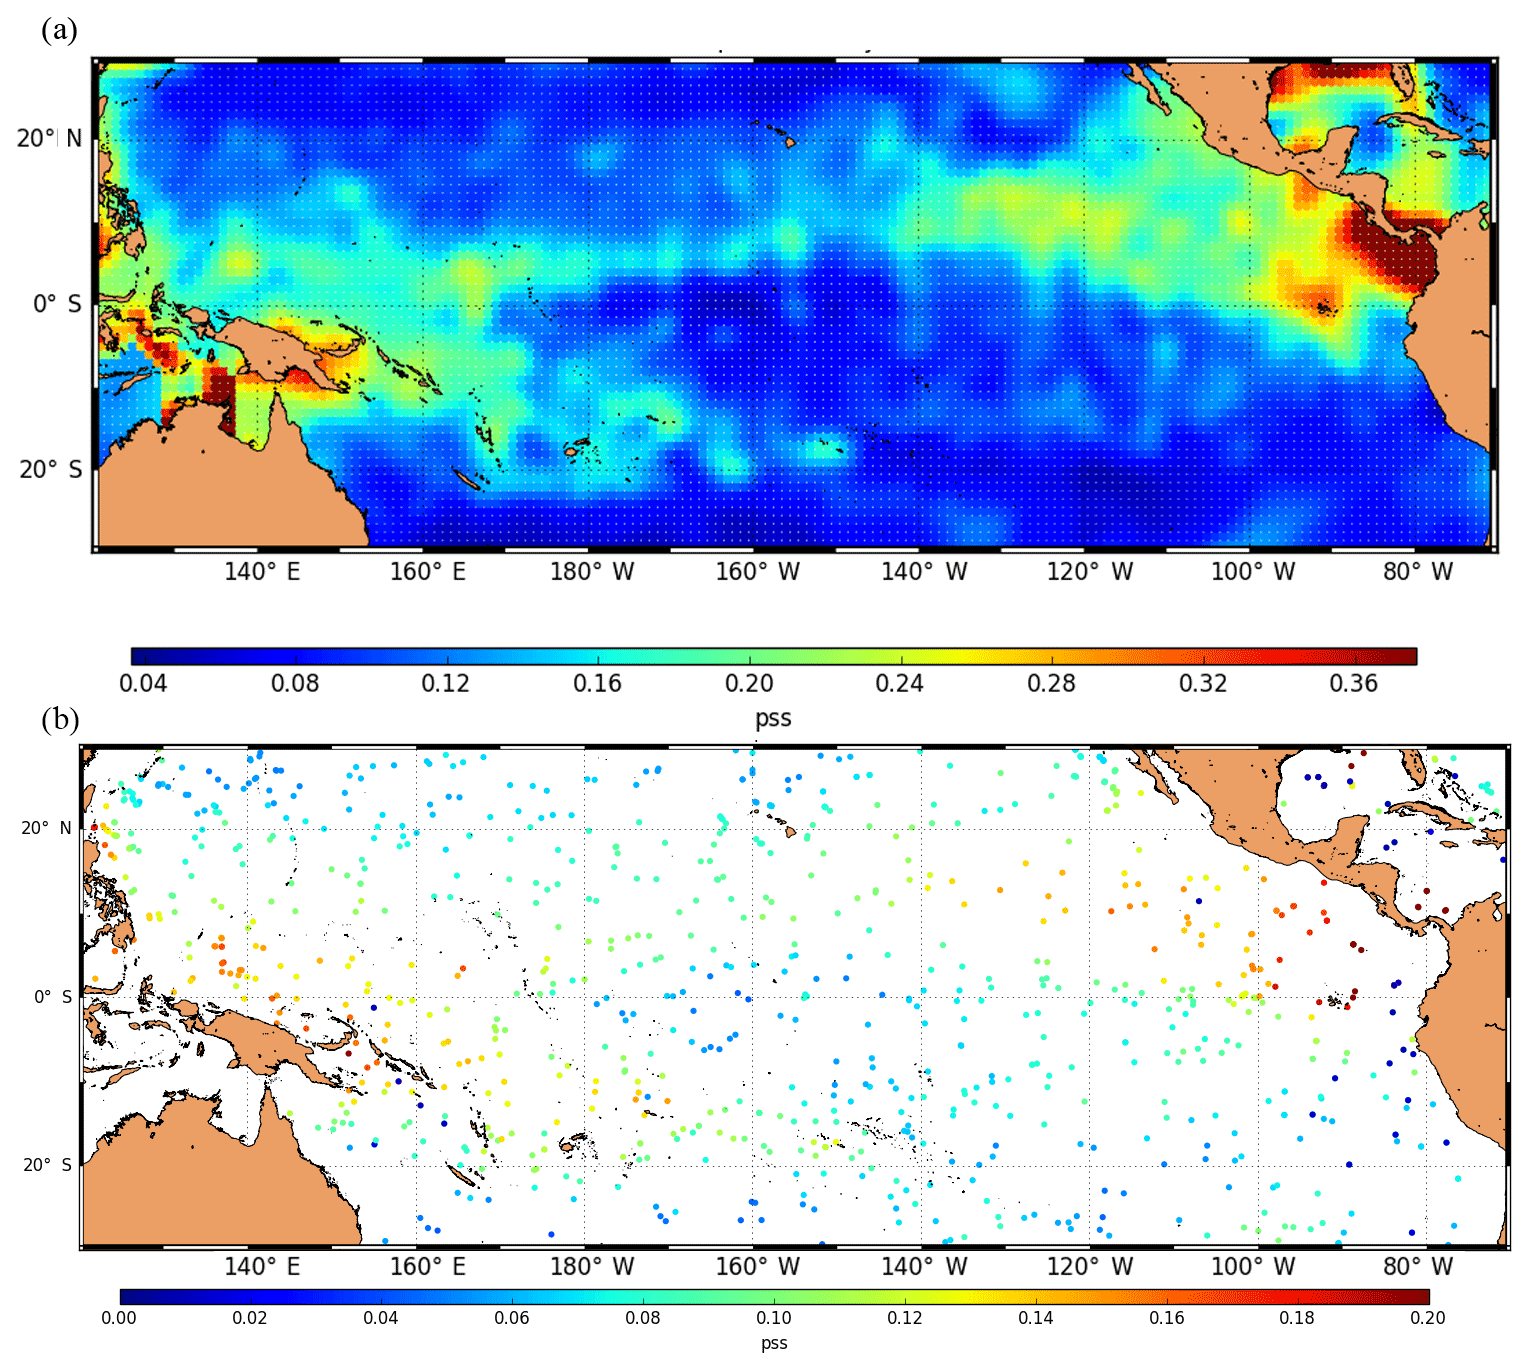 OS - Data assimilation of Soil Moisture and Ocean Salinity (SMOS